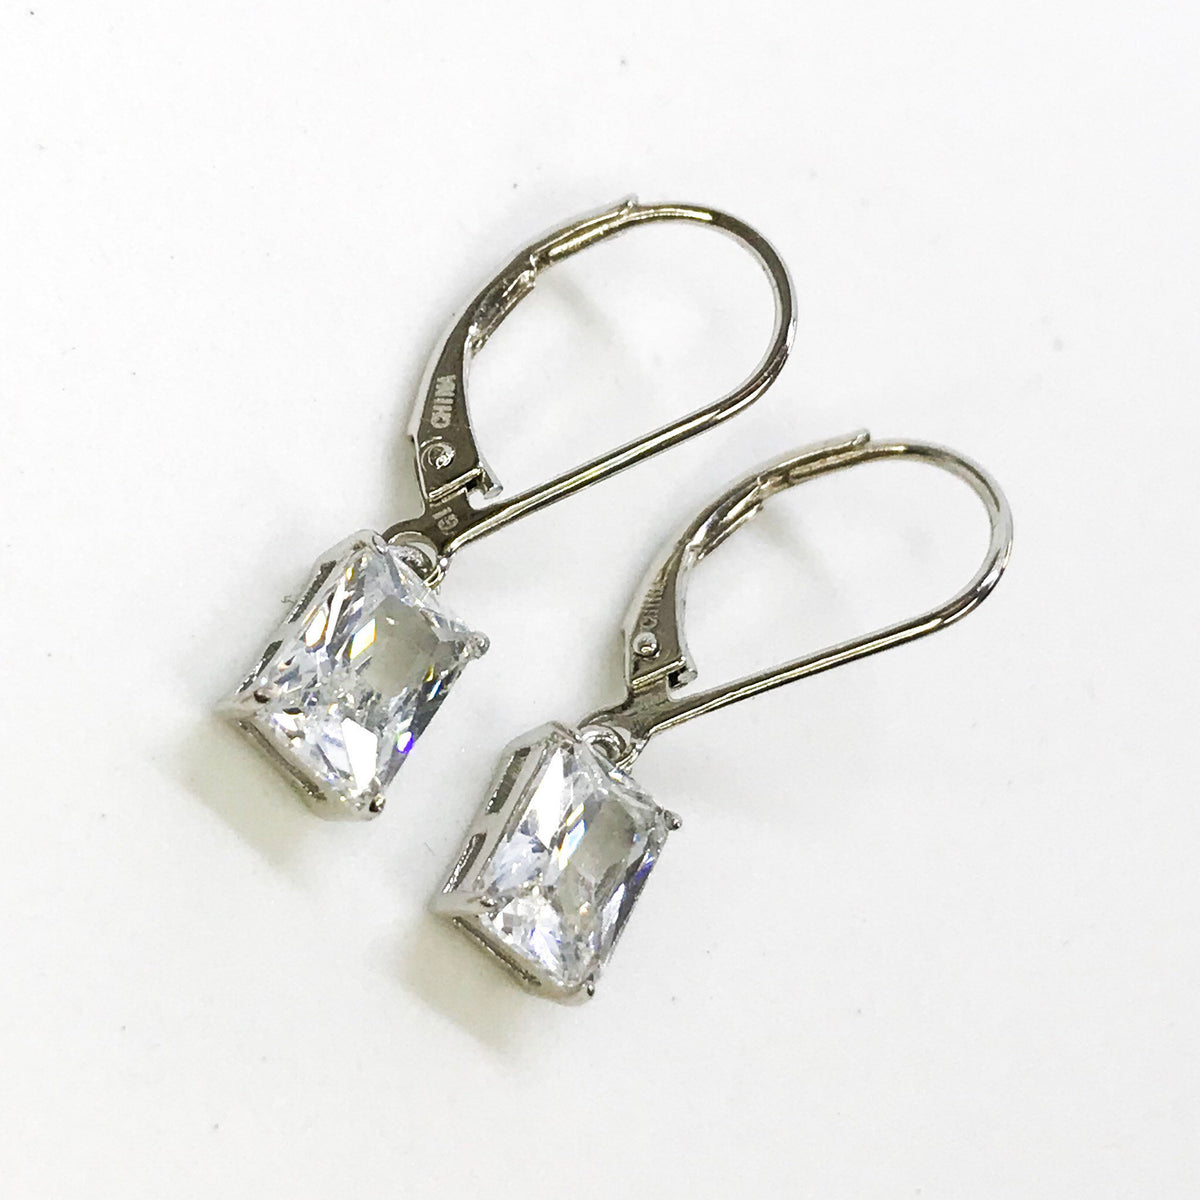 NEW .925 Sterling Silver Rectangular Dangling Earrings